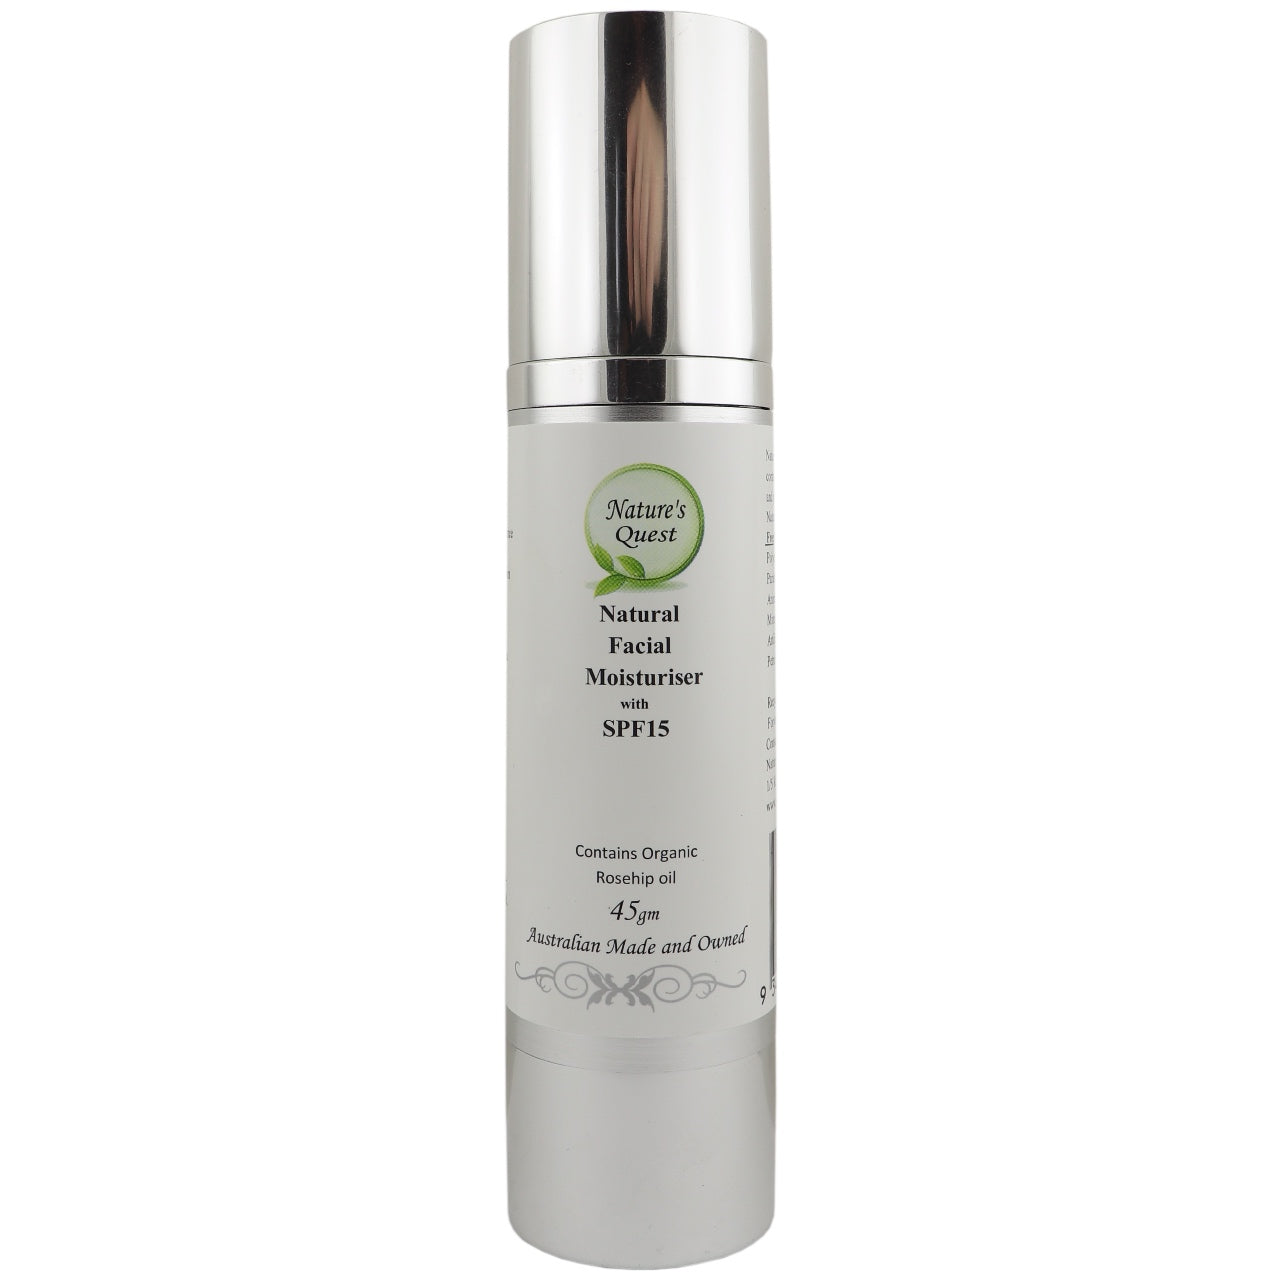 Nature's Quest Facial Moisturiser SPF15